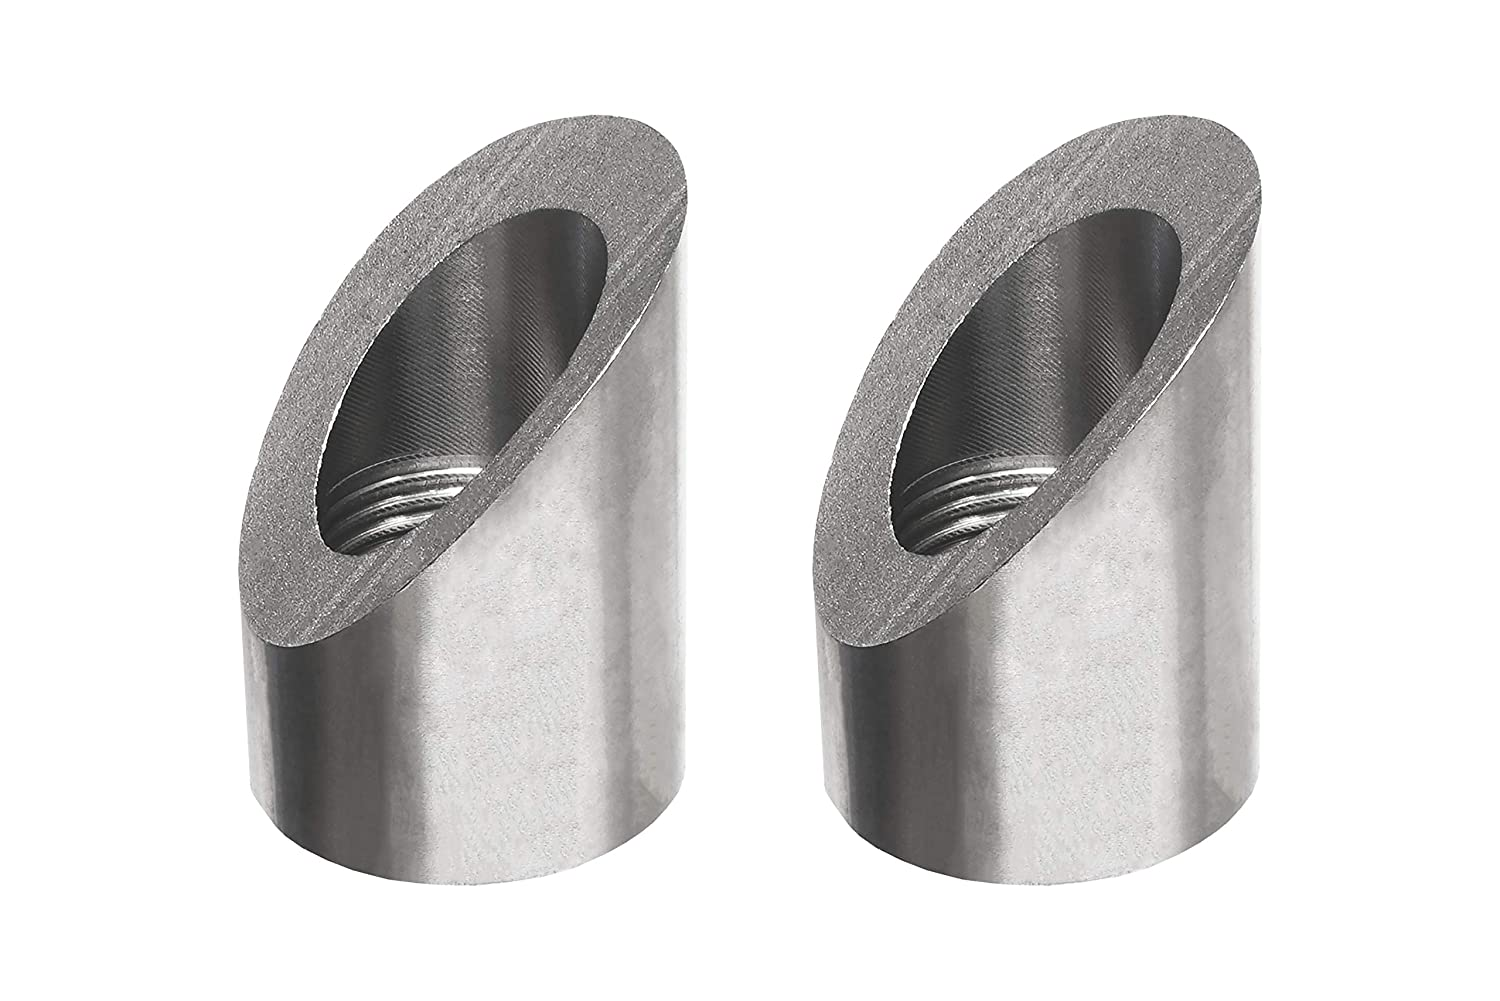 PitVisit Exhaust Weld Bungs Stainless Steel for Standard Size Bosch Style Lambda Wideband Oxygen Sensors Universal Weld-On Pack of 2 Notched